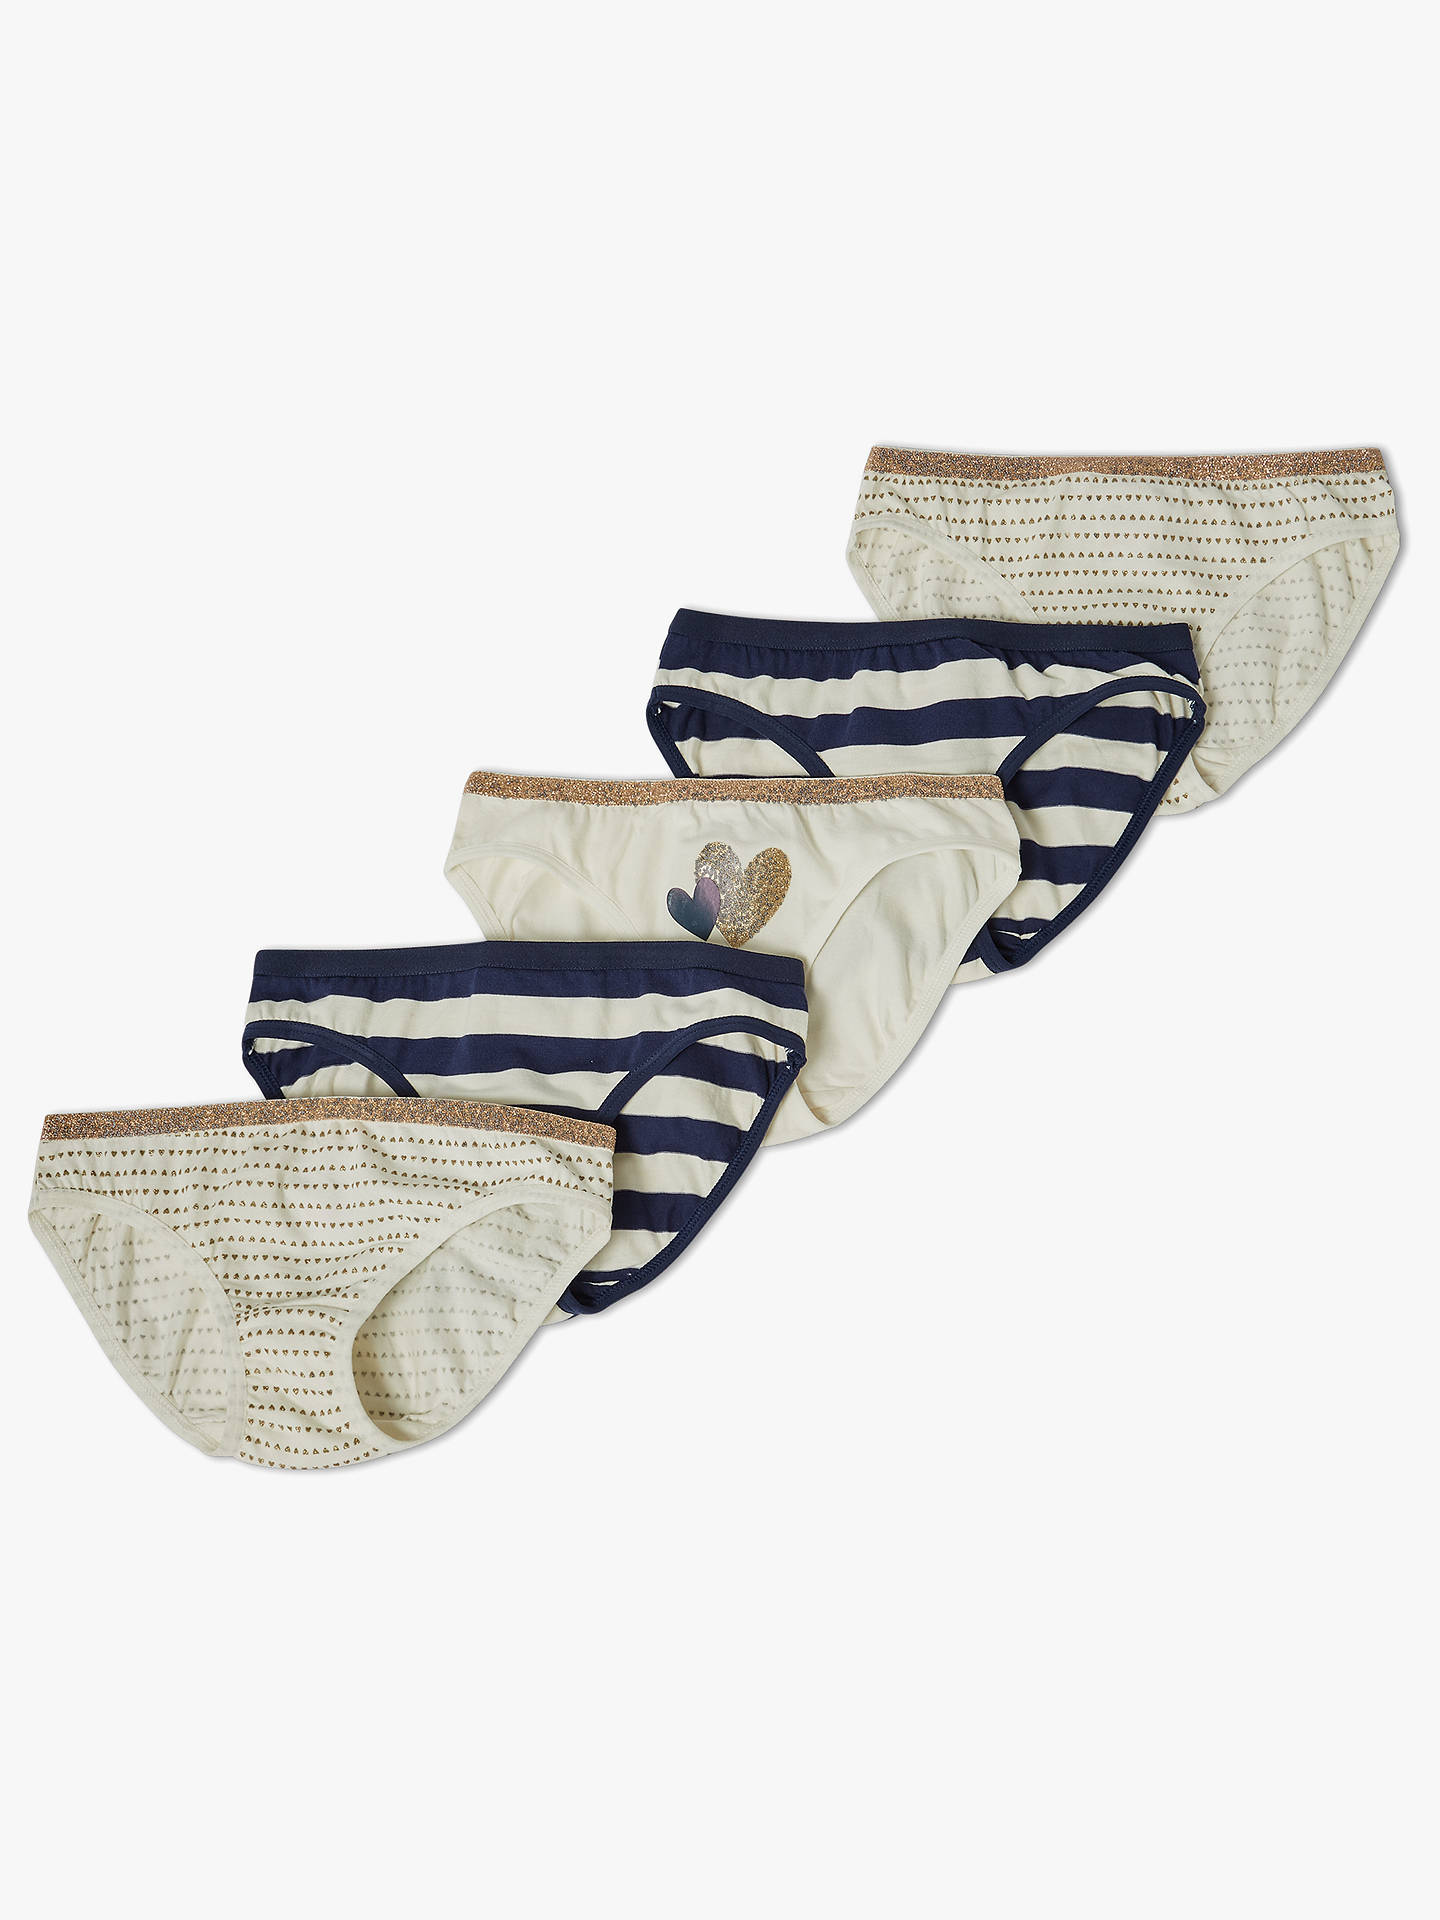 BuyJohn Lewis & Partners Girls' Heart Print Bikini Briefs, Pack of 5, Multi, 5 years Online at johnlewis.com